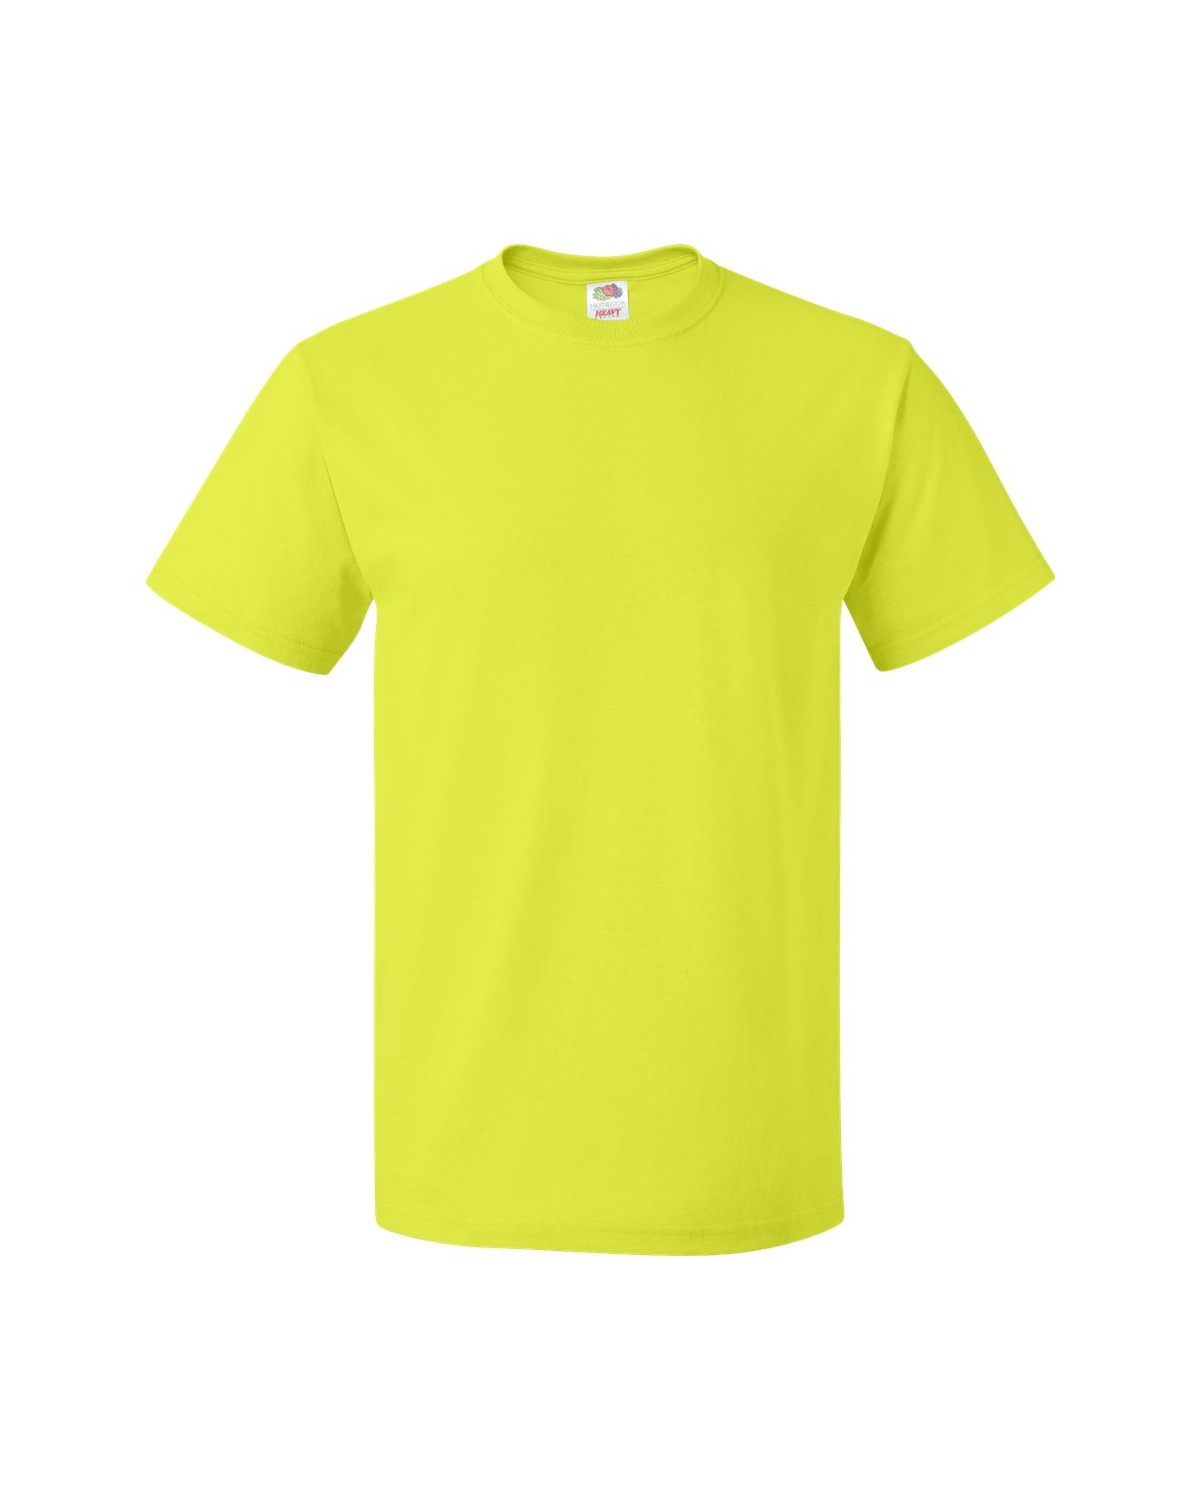 3930R Fruit of the Loom SAFETY GREEN